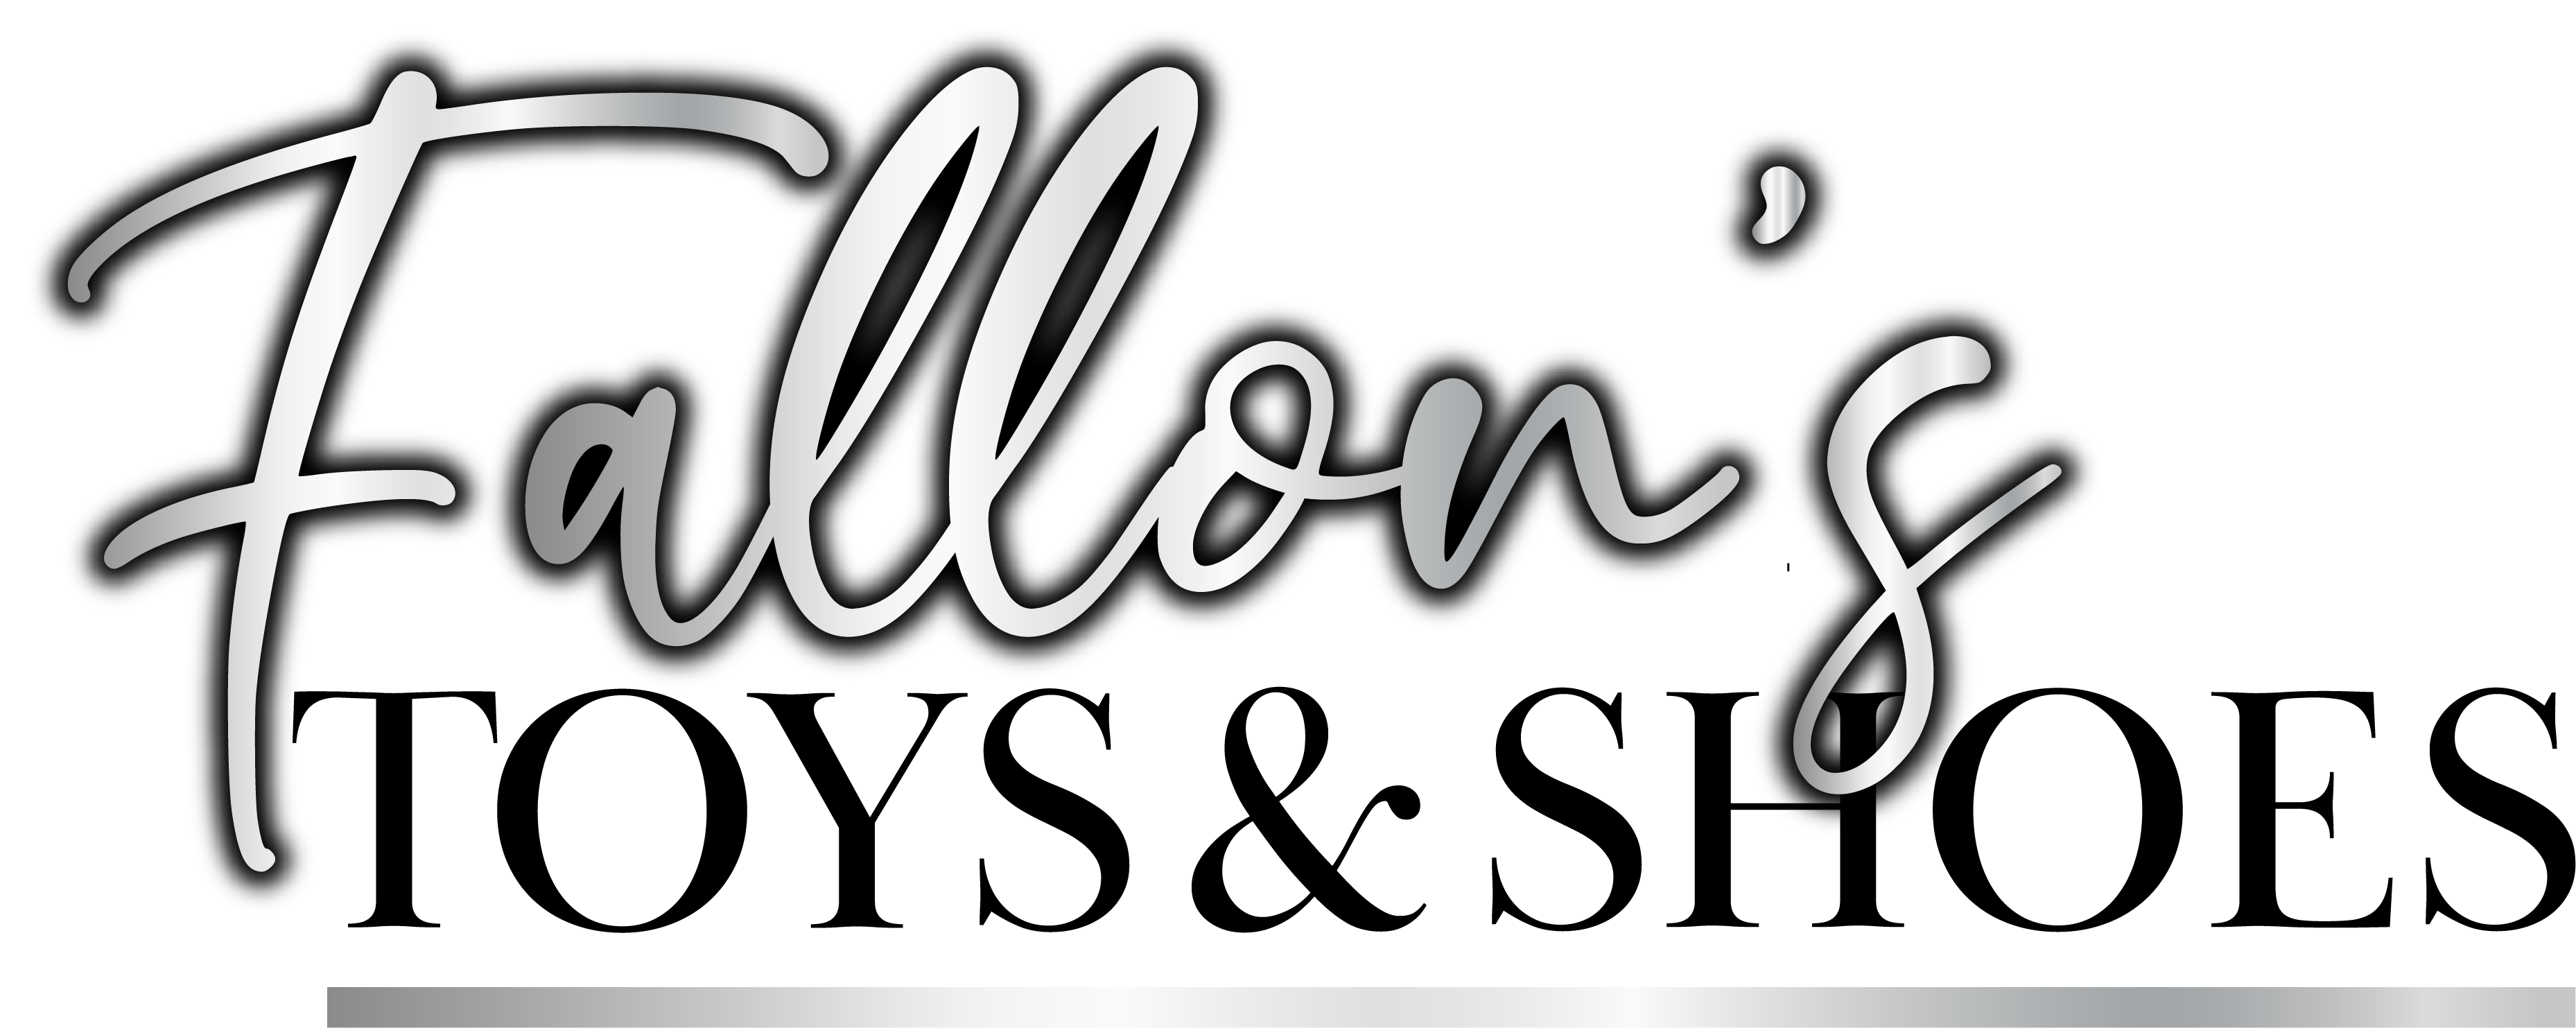 Fallons Toys & Shoes logo